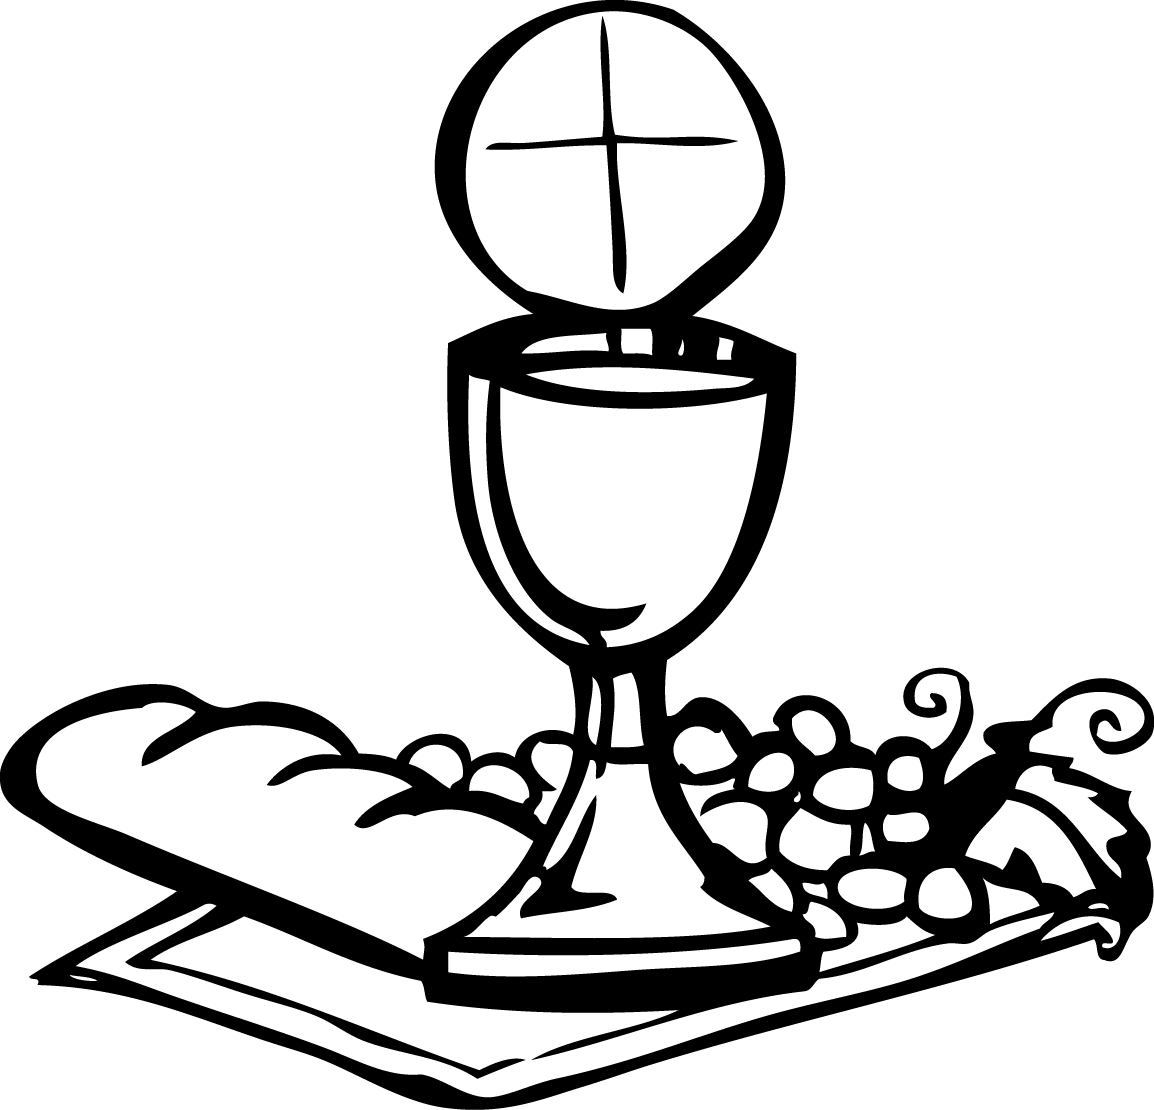 Communion clipart eucharist clip. Monstrance drawing jpg royalty free library